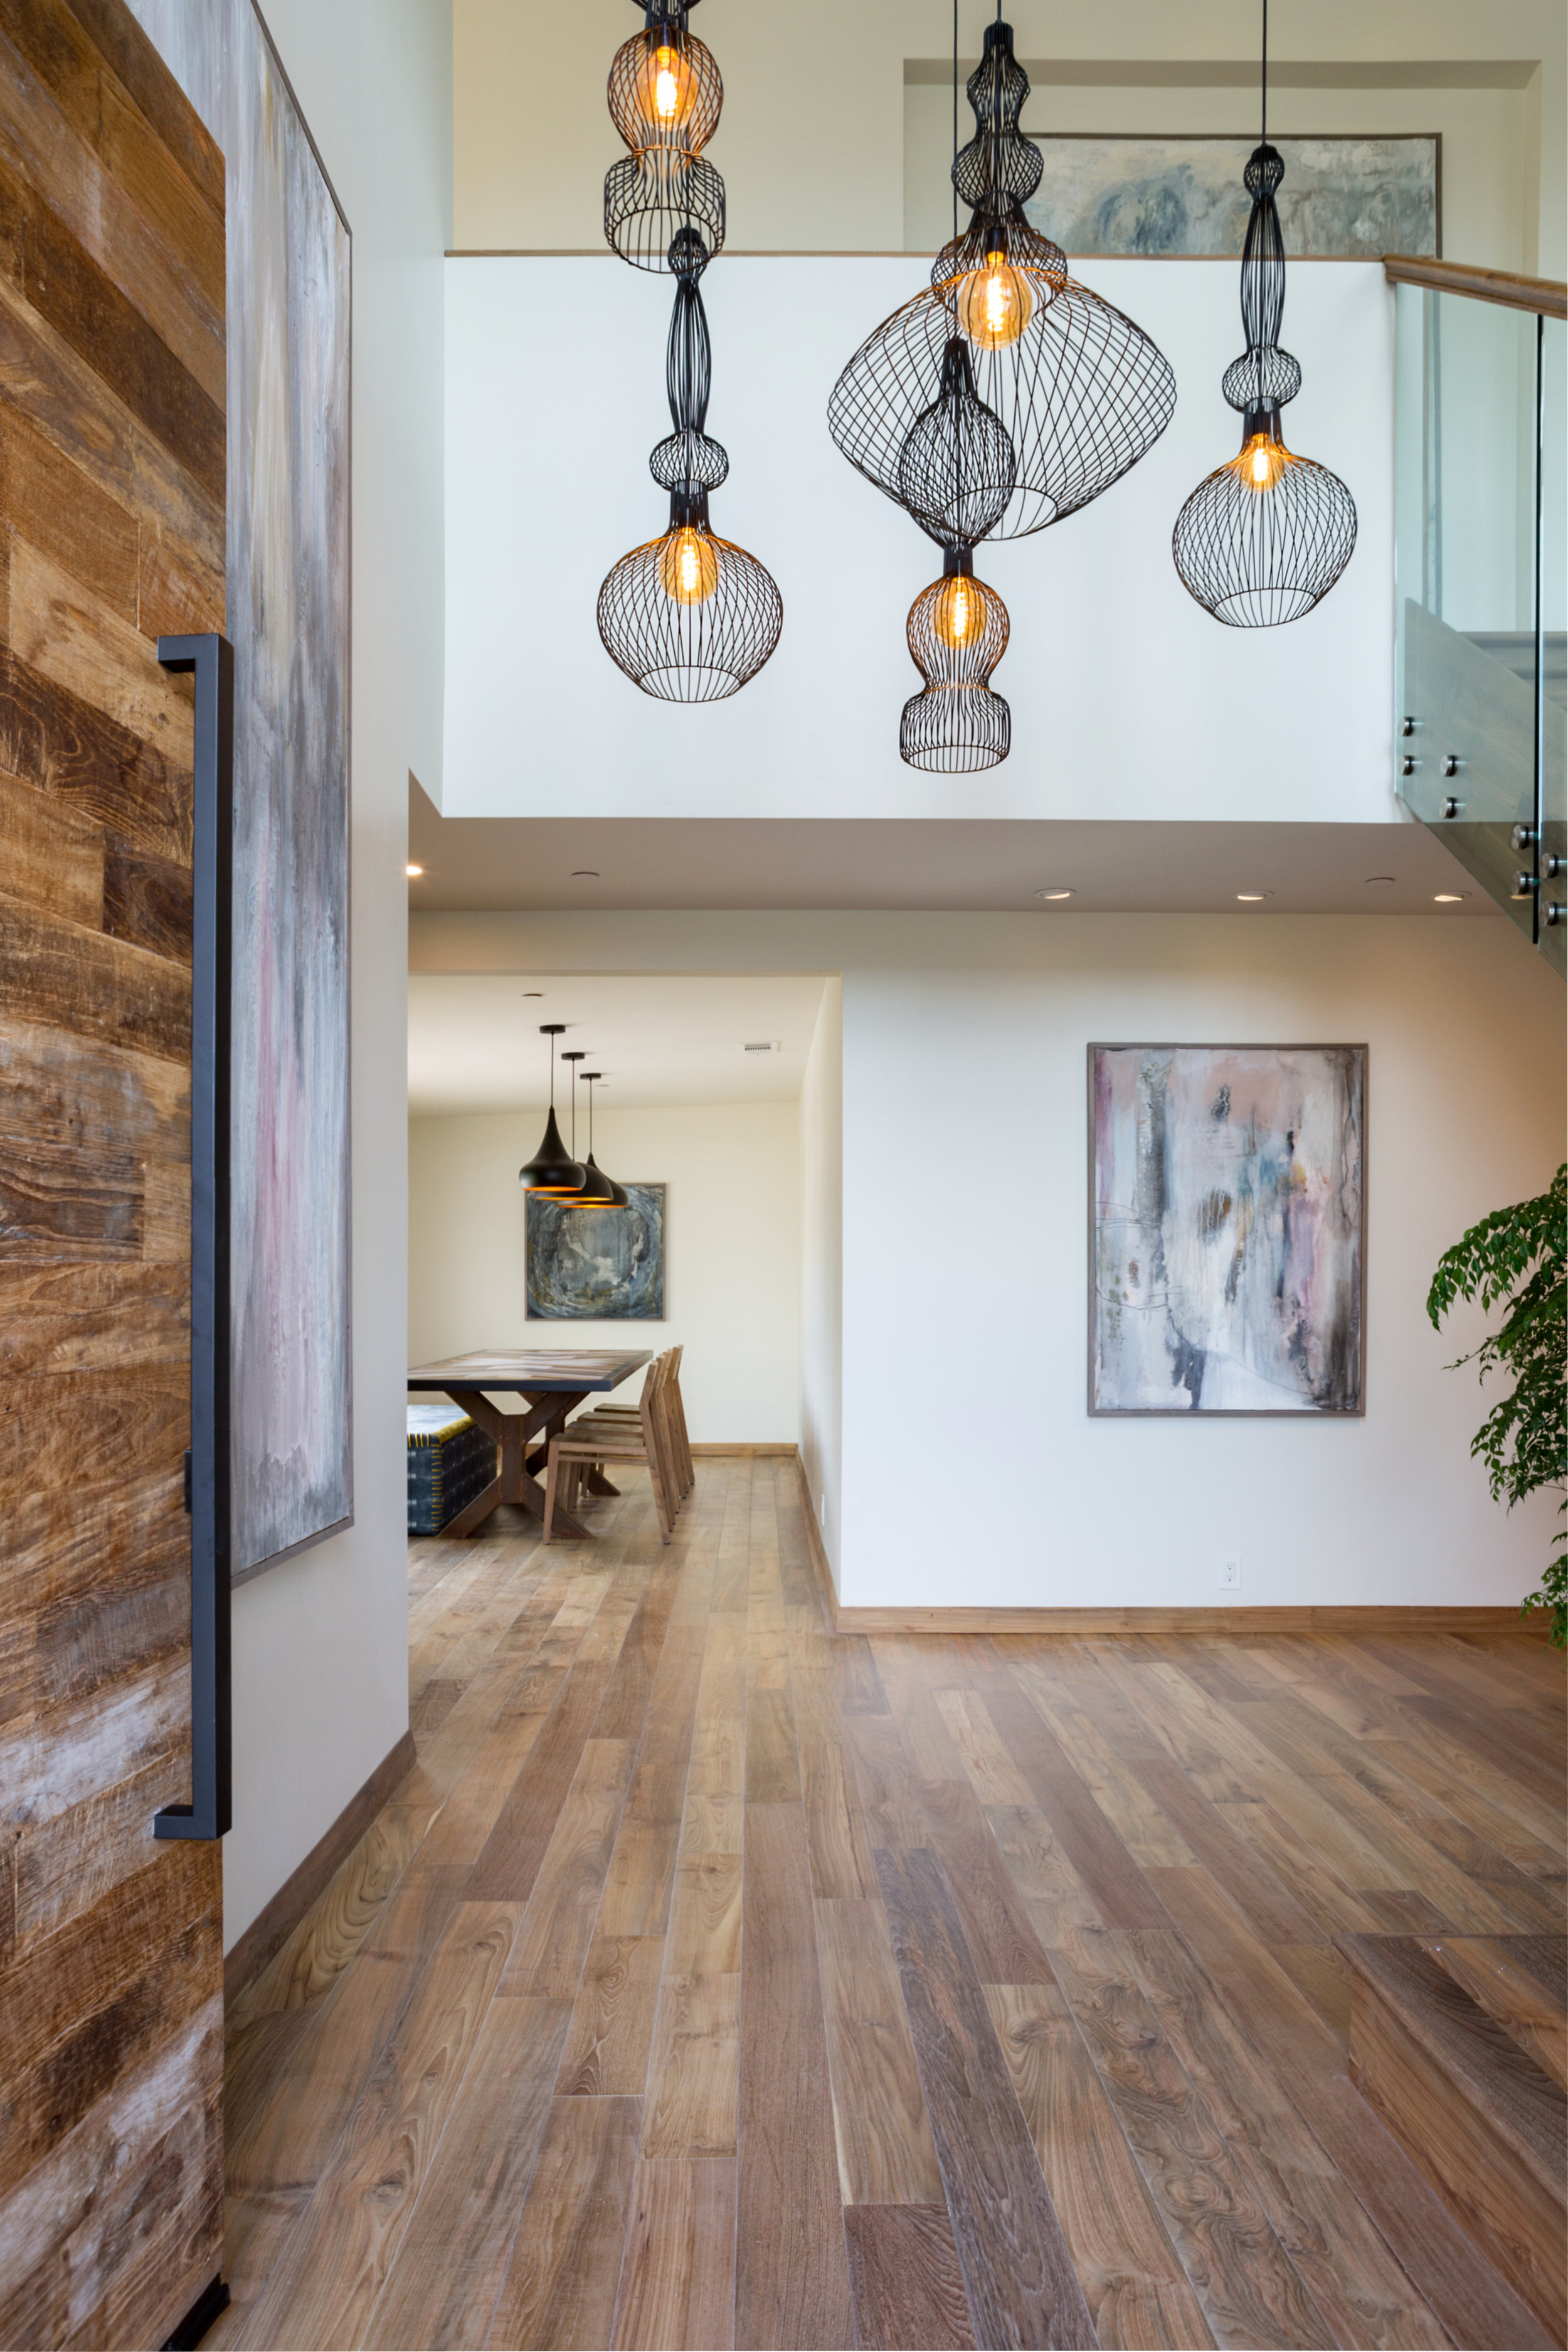 Home in Southern California - inspired by the natural elements of soft colors, wood and the sea.